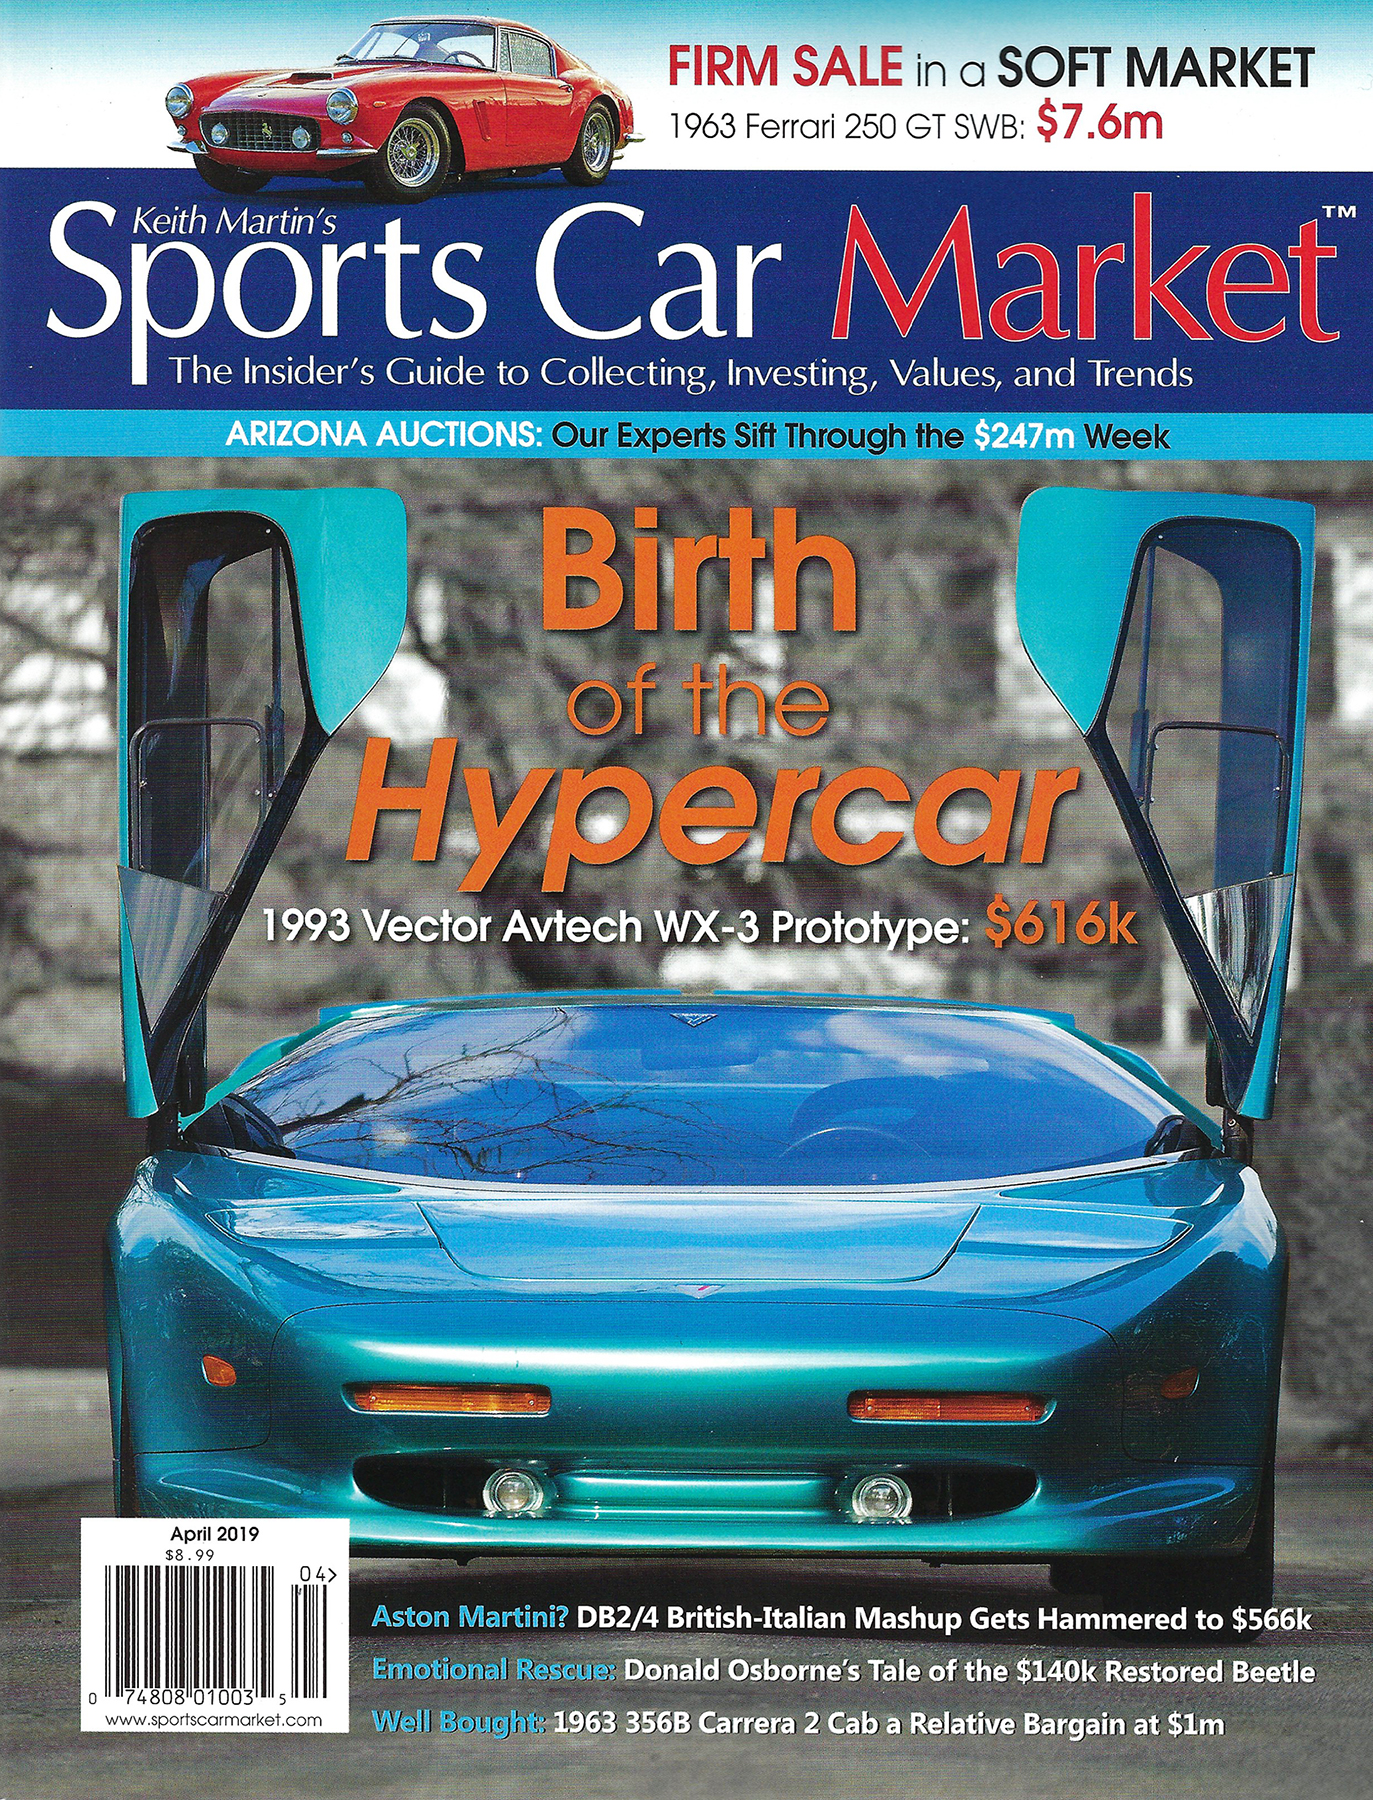 Sports Car Market - Excited to join Sports Car Market magazine as advertisers to impart our brand to the discerning collector market with our great new, hand made in Italy collection of finely crafted leather products for the automotive world! We offer a line of the finest travel/racing accessories on the planet bar none!